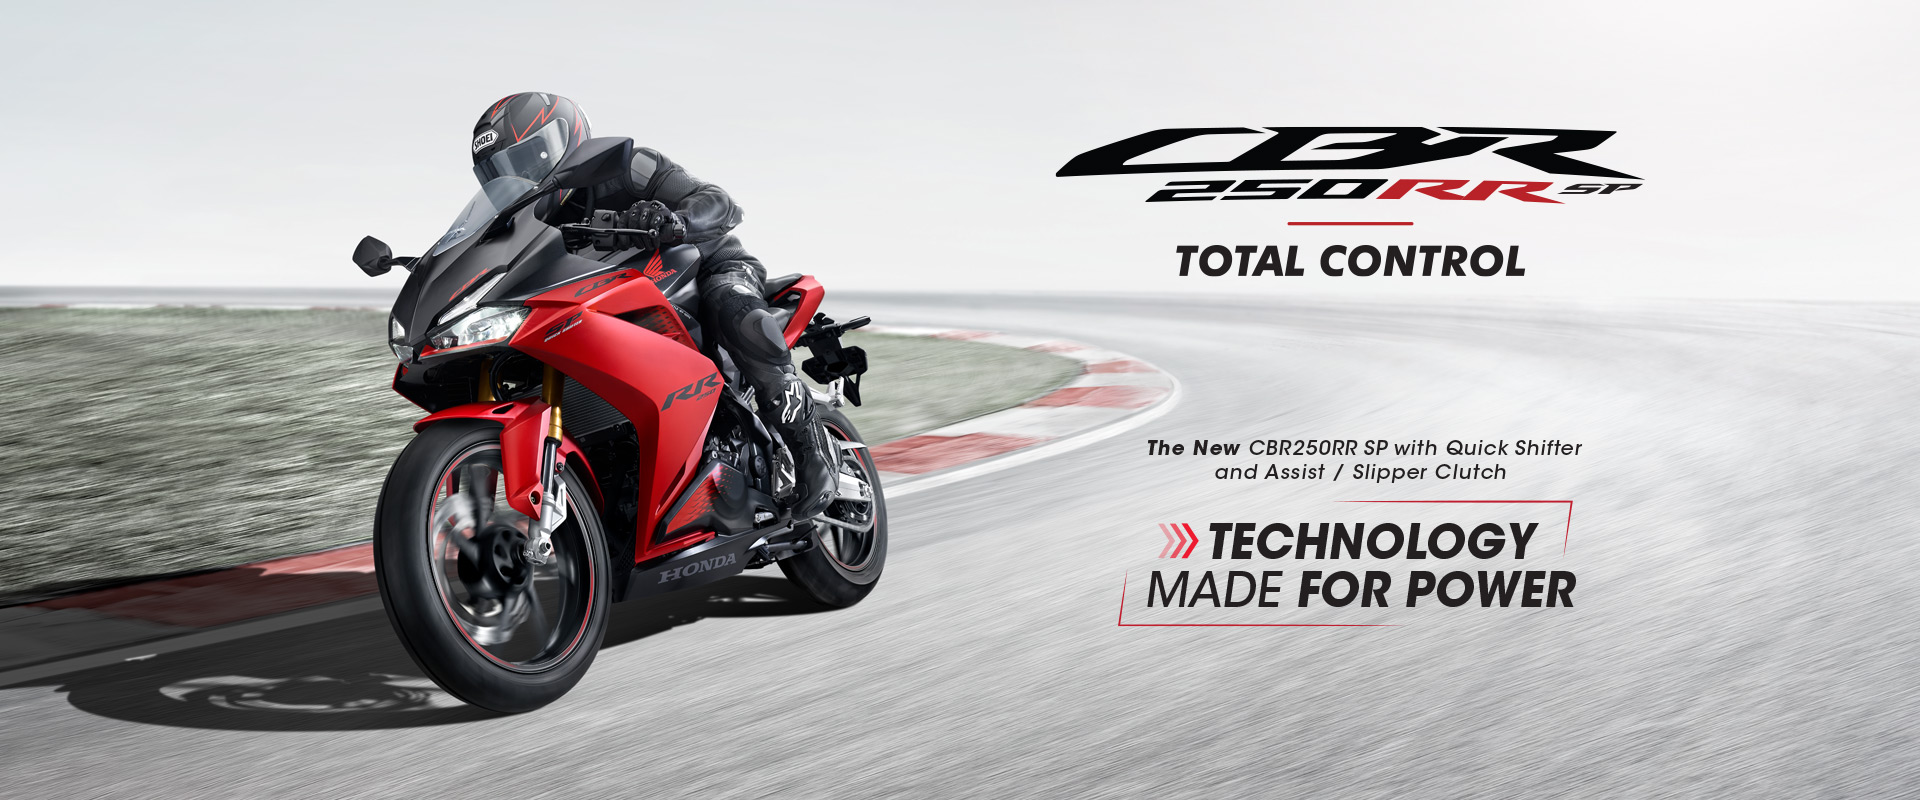 Honda CBR250RR SP is now open for pre-booking in Malaysia!